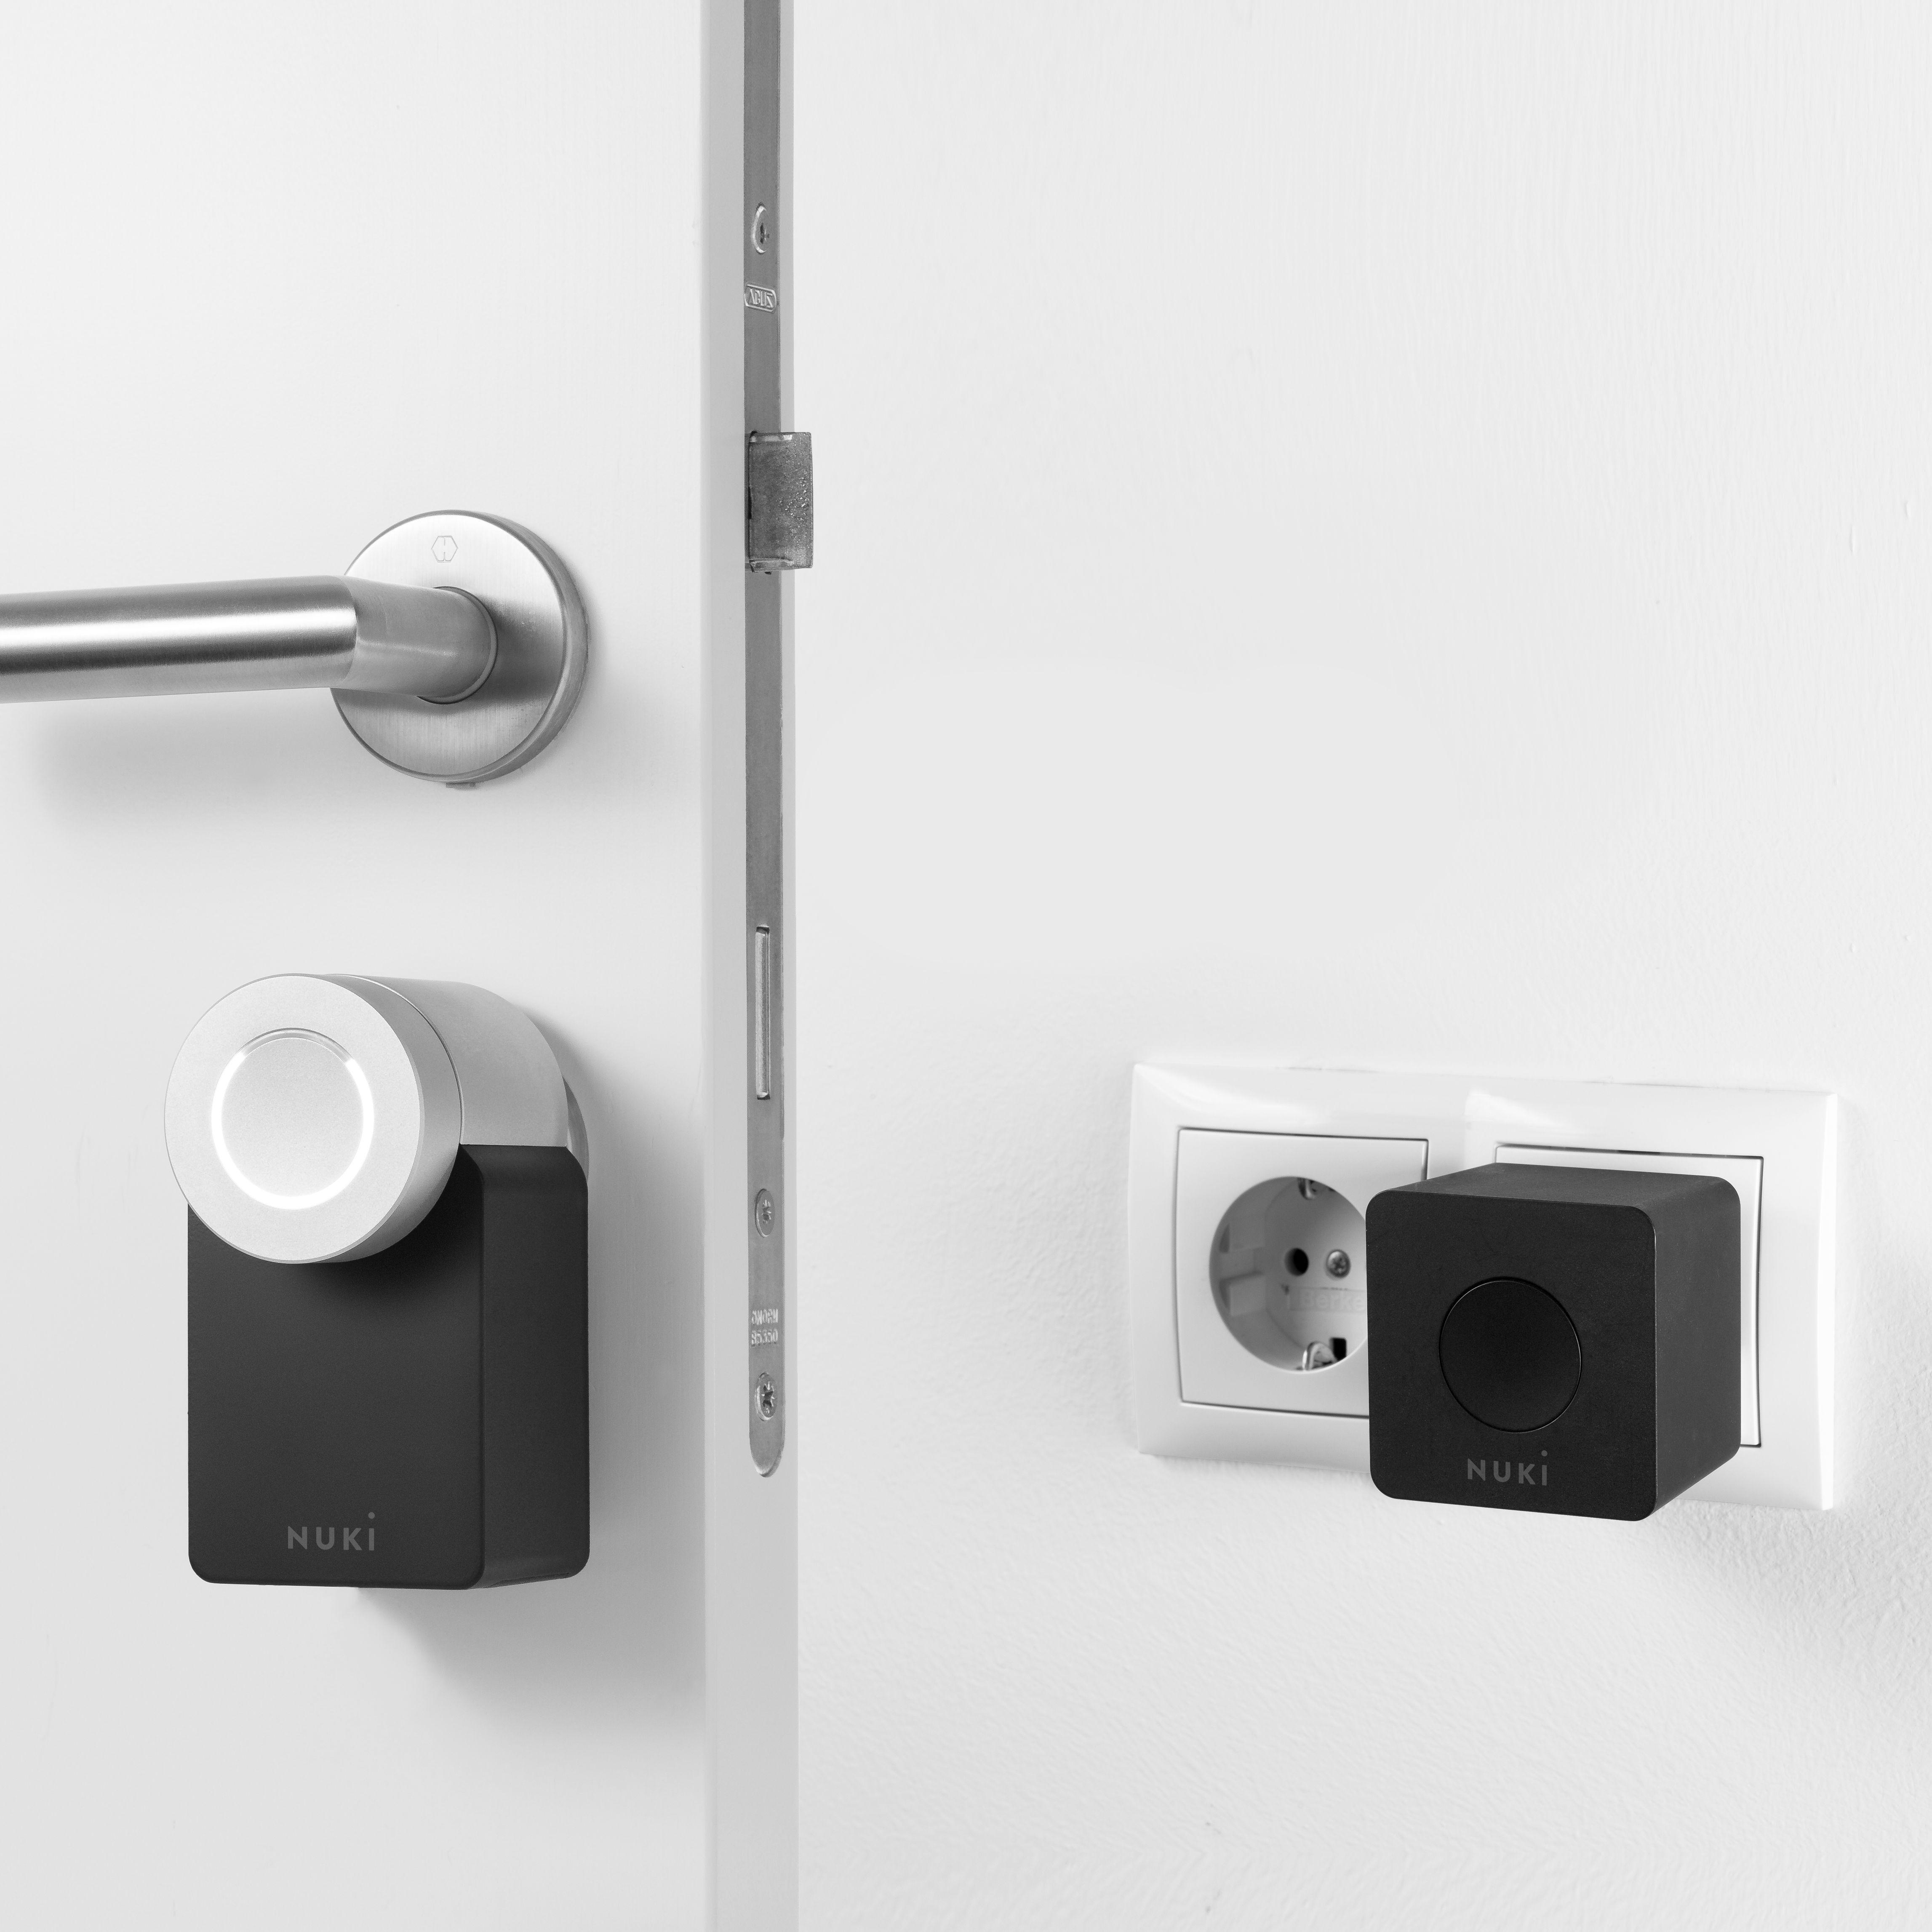 us wave handle auto wickes manufacturer the z devices knob lock supplier door handles deadbolt vision with doors in